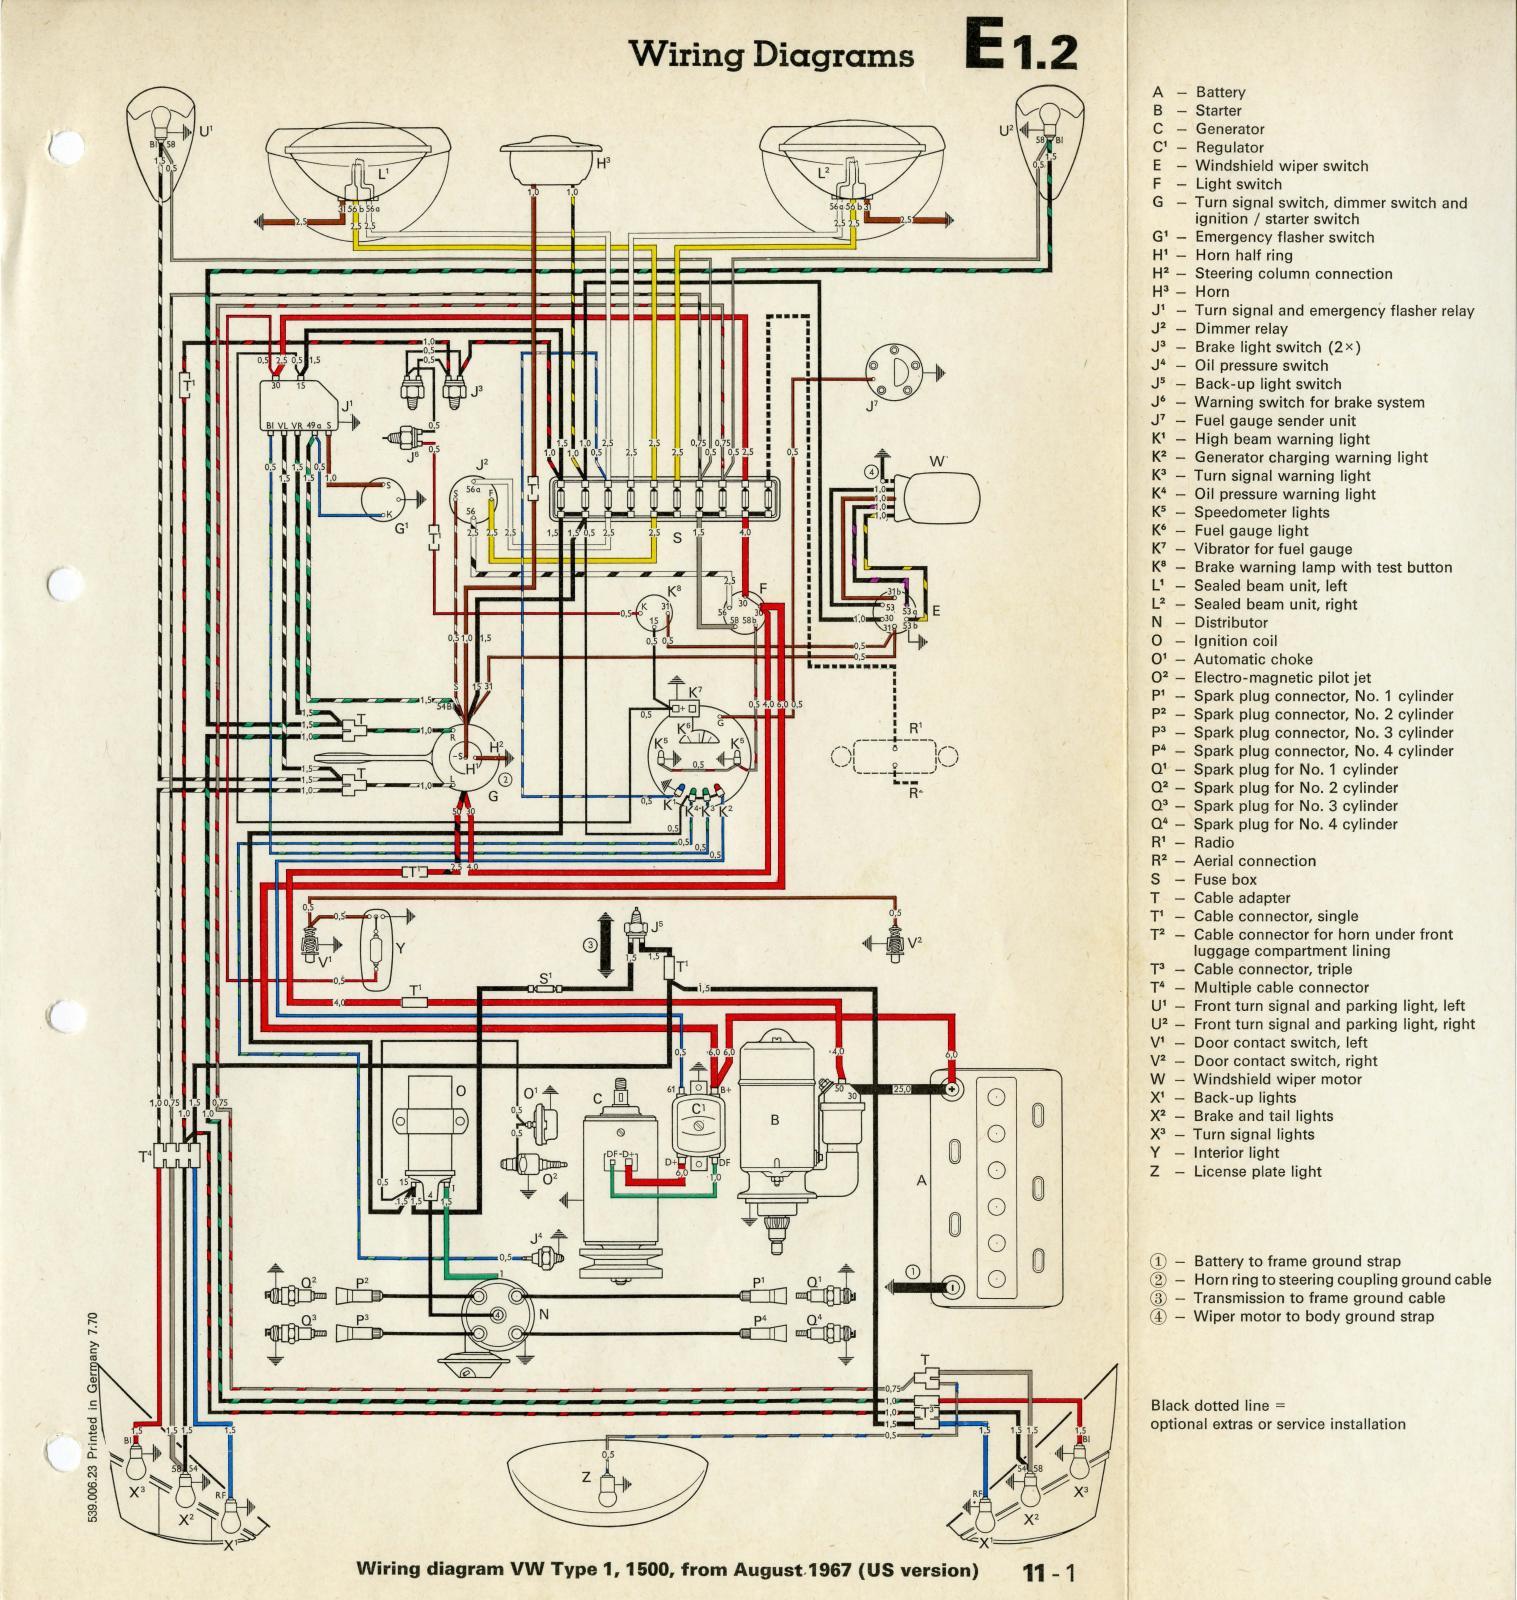 1968 vw beetle autostick wiring diagram 1999 ezgo golf cart thesamba late model super up view